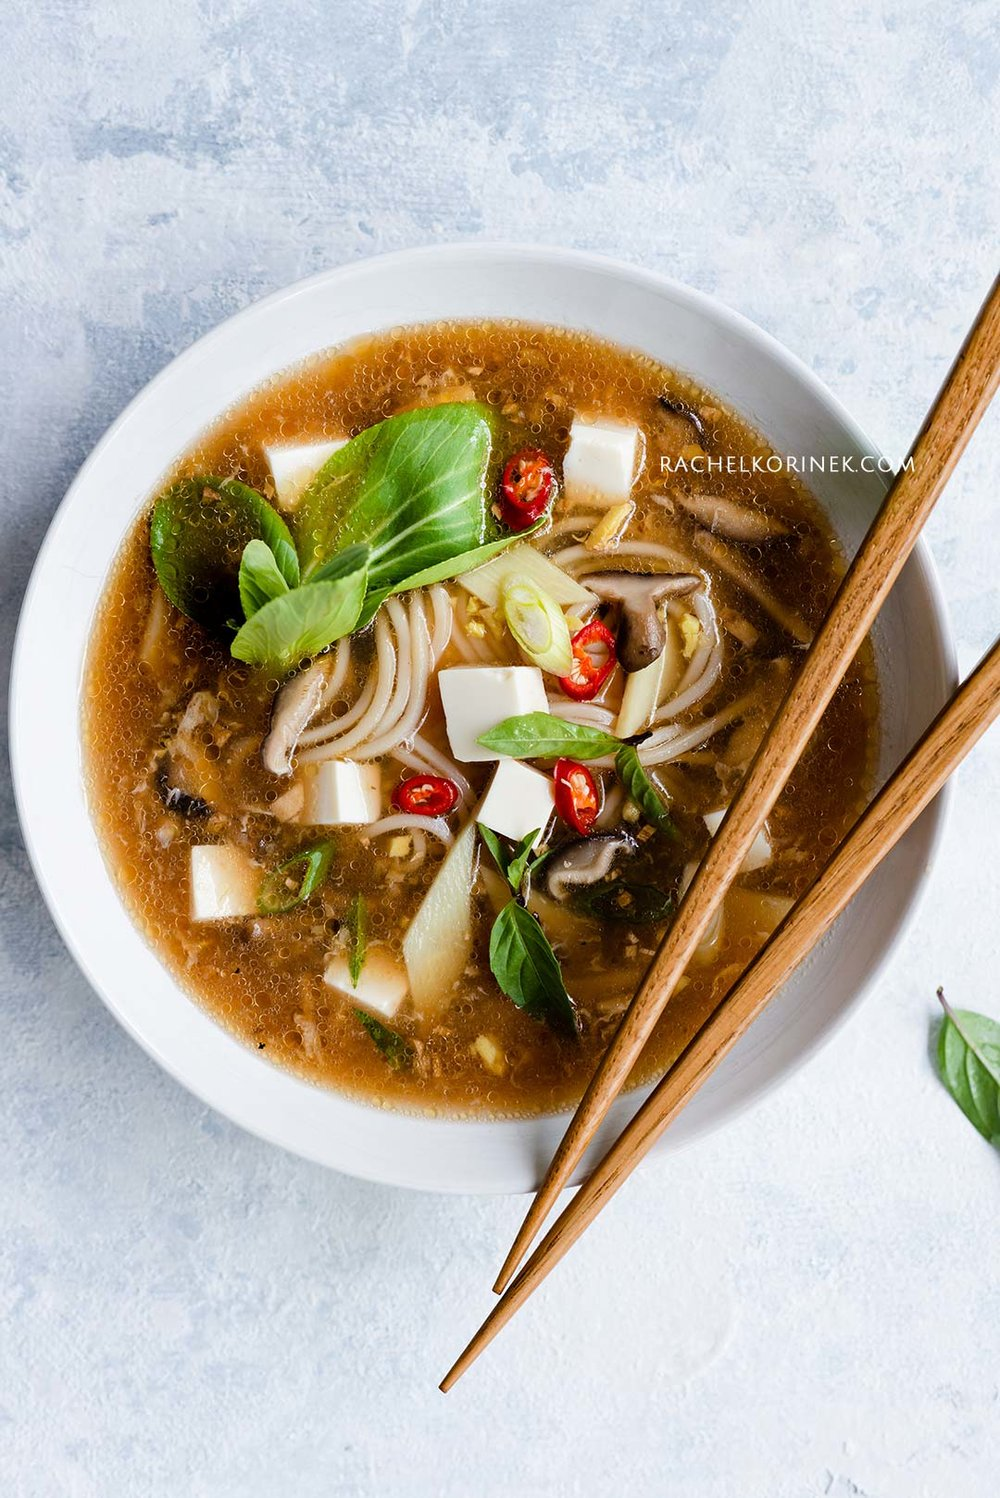 Rachel Korinek Food Photography | Hot Sour Soup